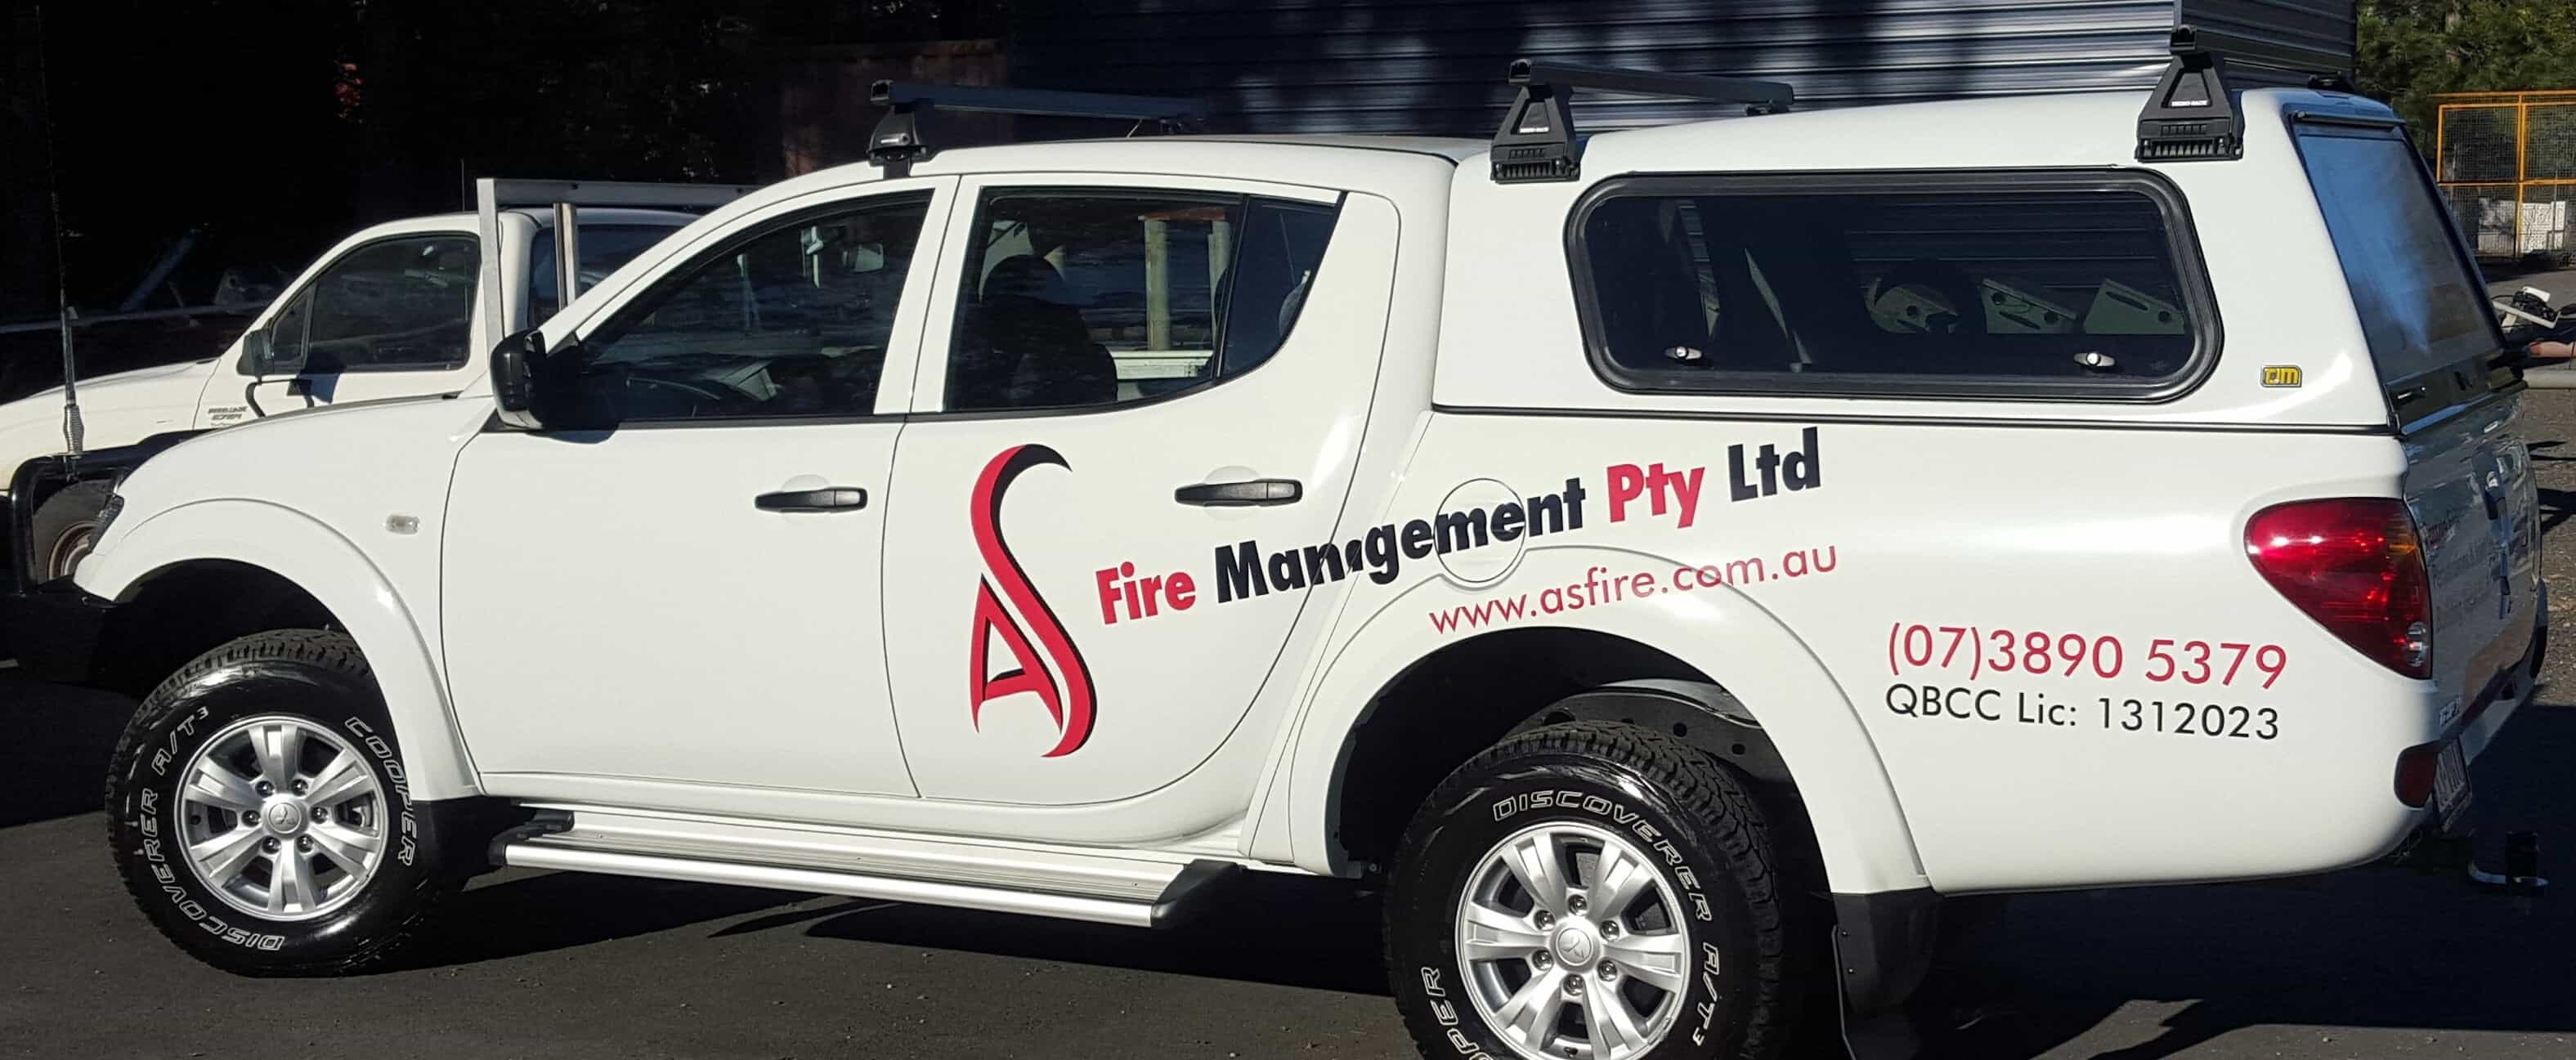 Fire Protection Services Brisbane South